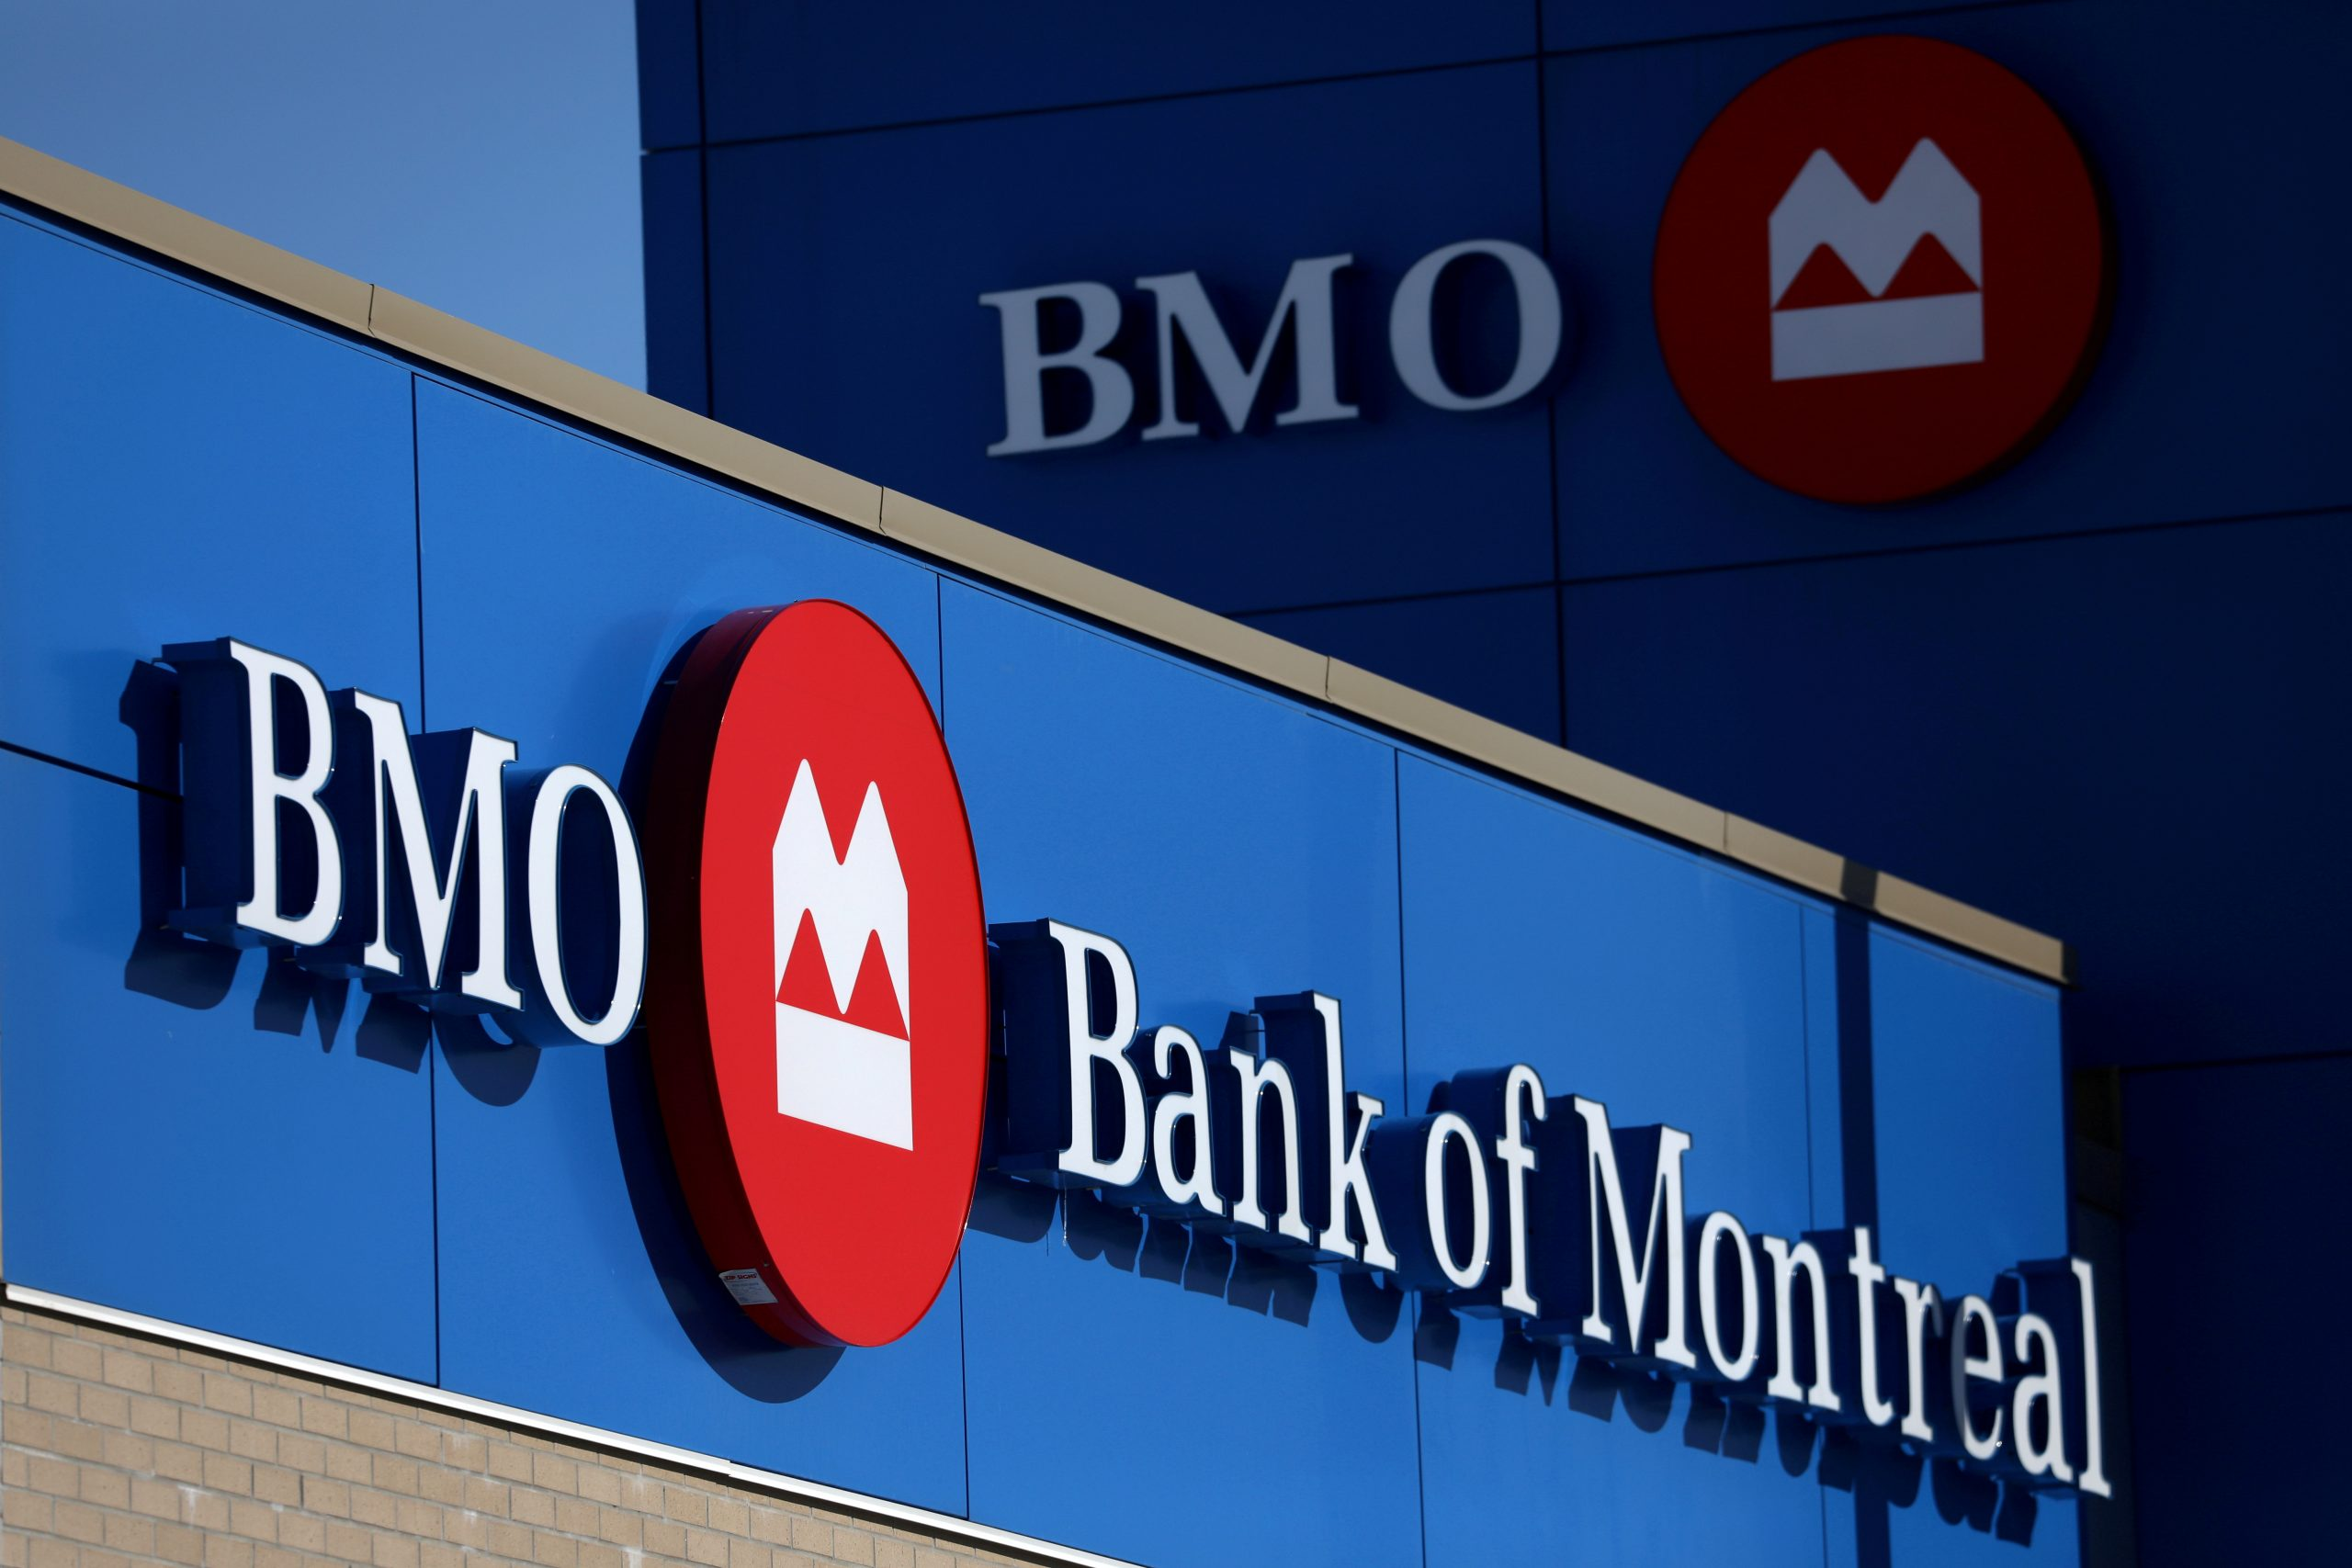 Bank of Montreal earnings beat estimates, adds mortgage safeguards